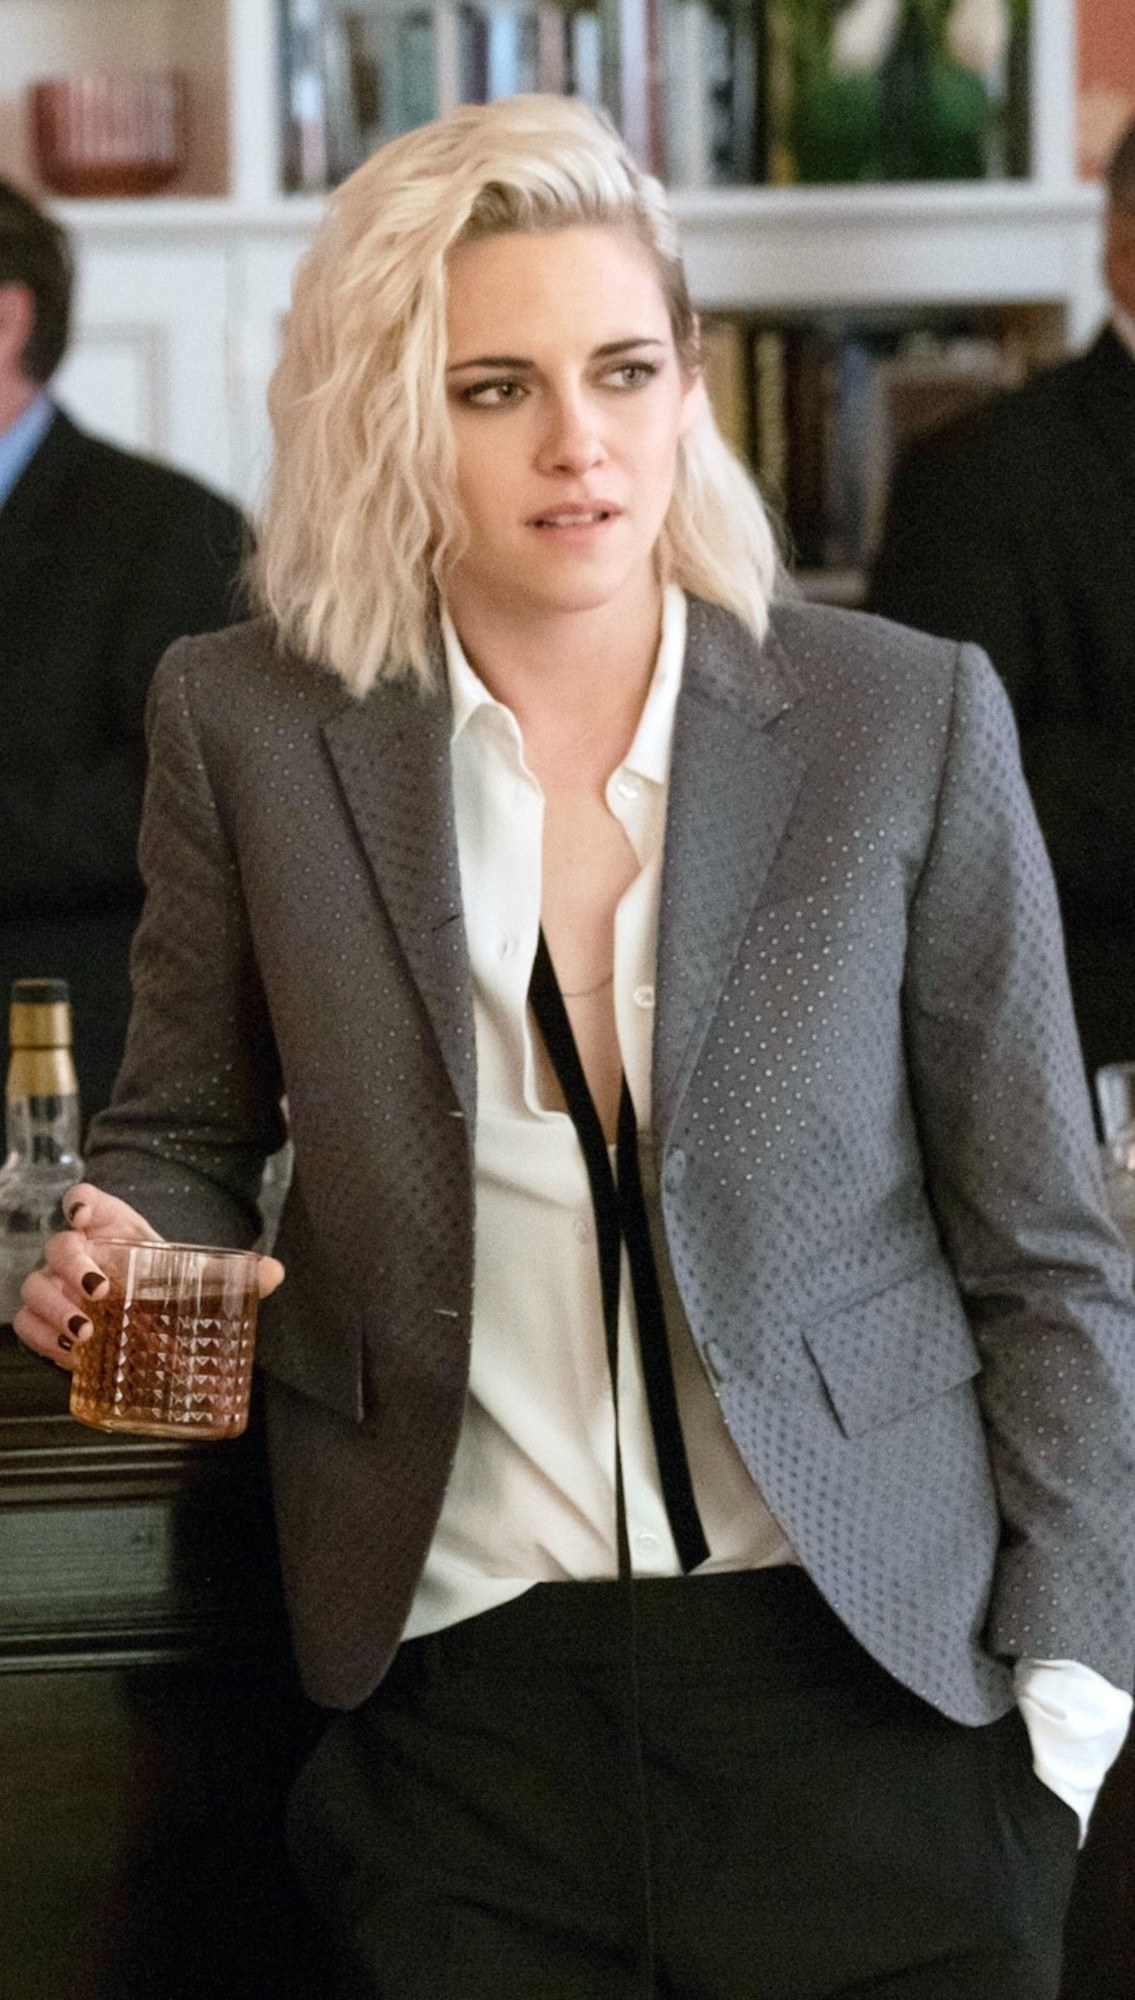 Kristen Stewart leaning up against a bar while holding a cocktail